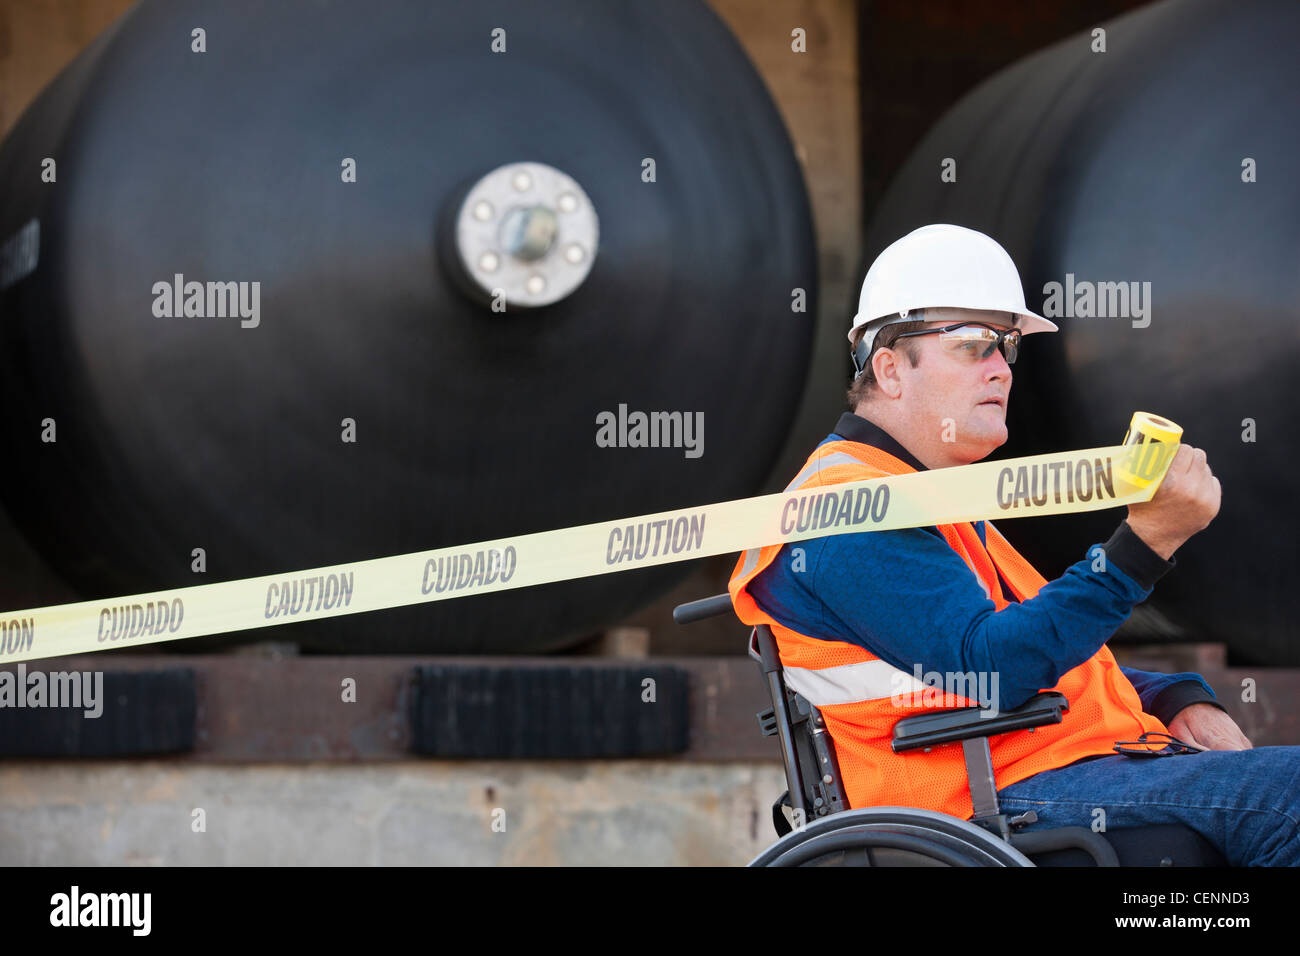 Facilities engineer in a wheelchair pulling caution tape in front of chemical storage tanks - Stock Image